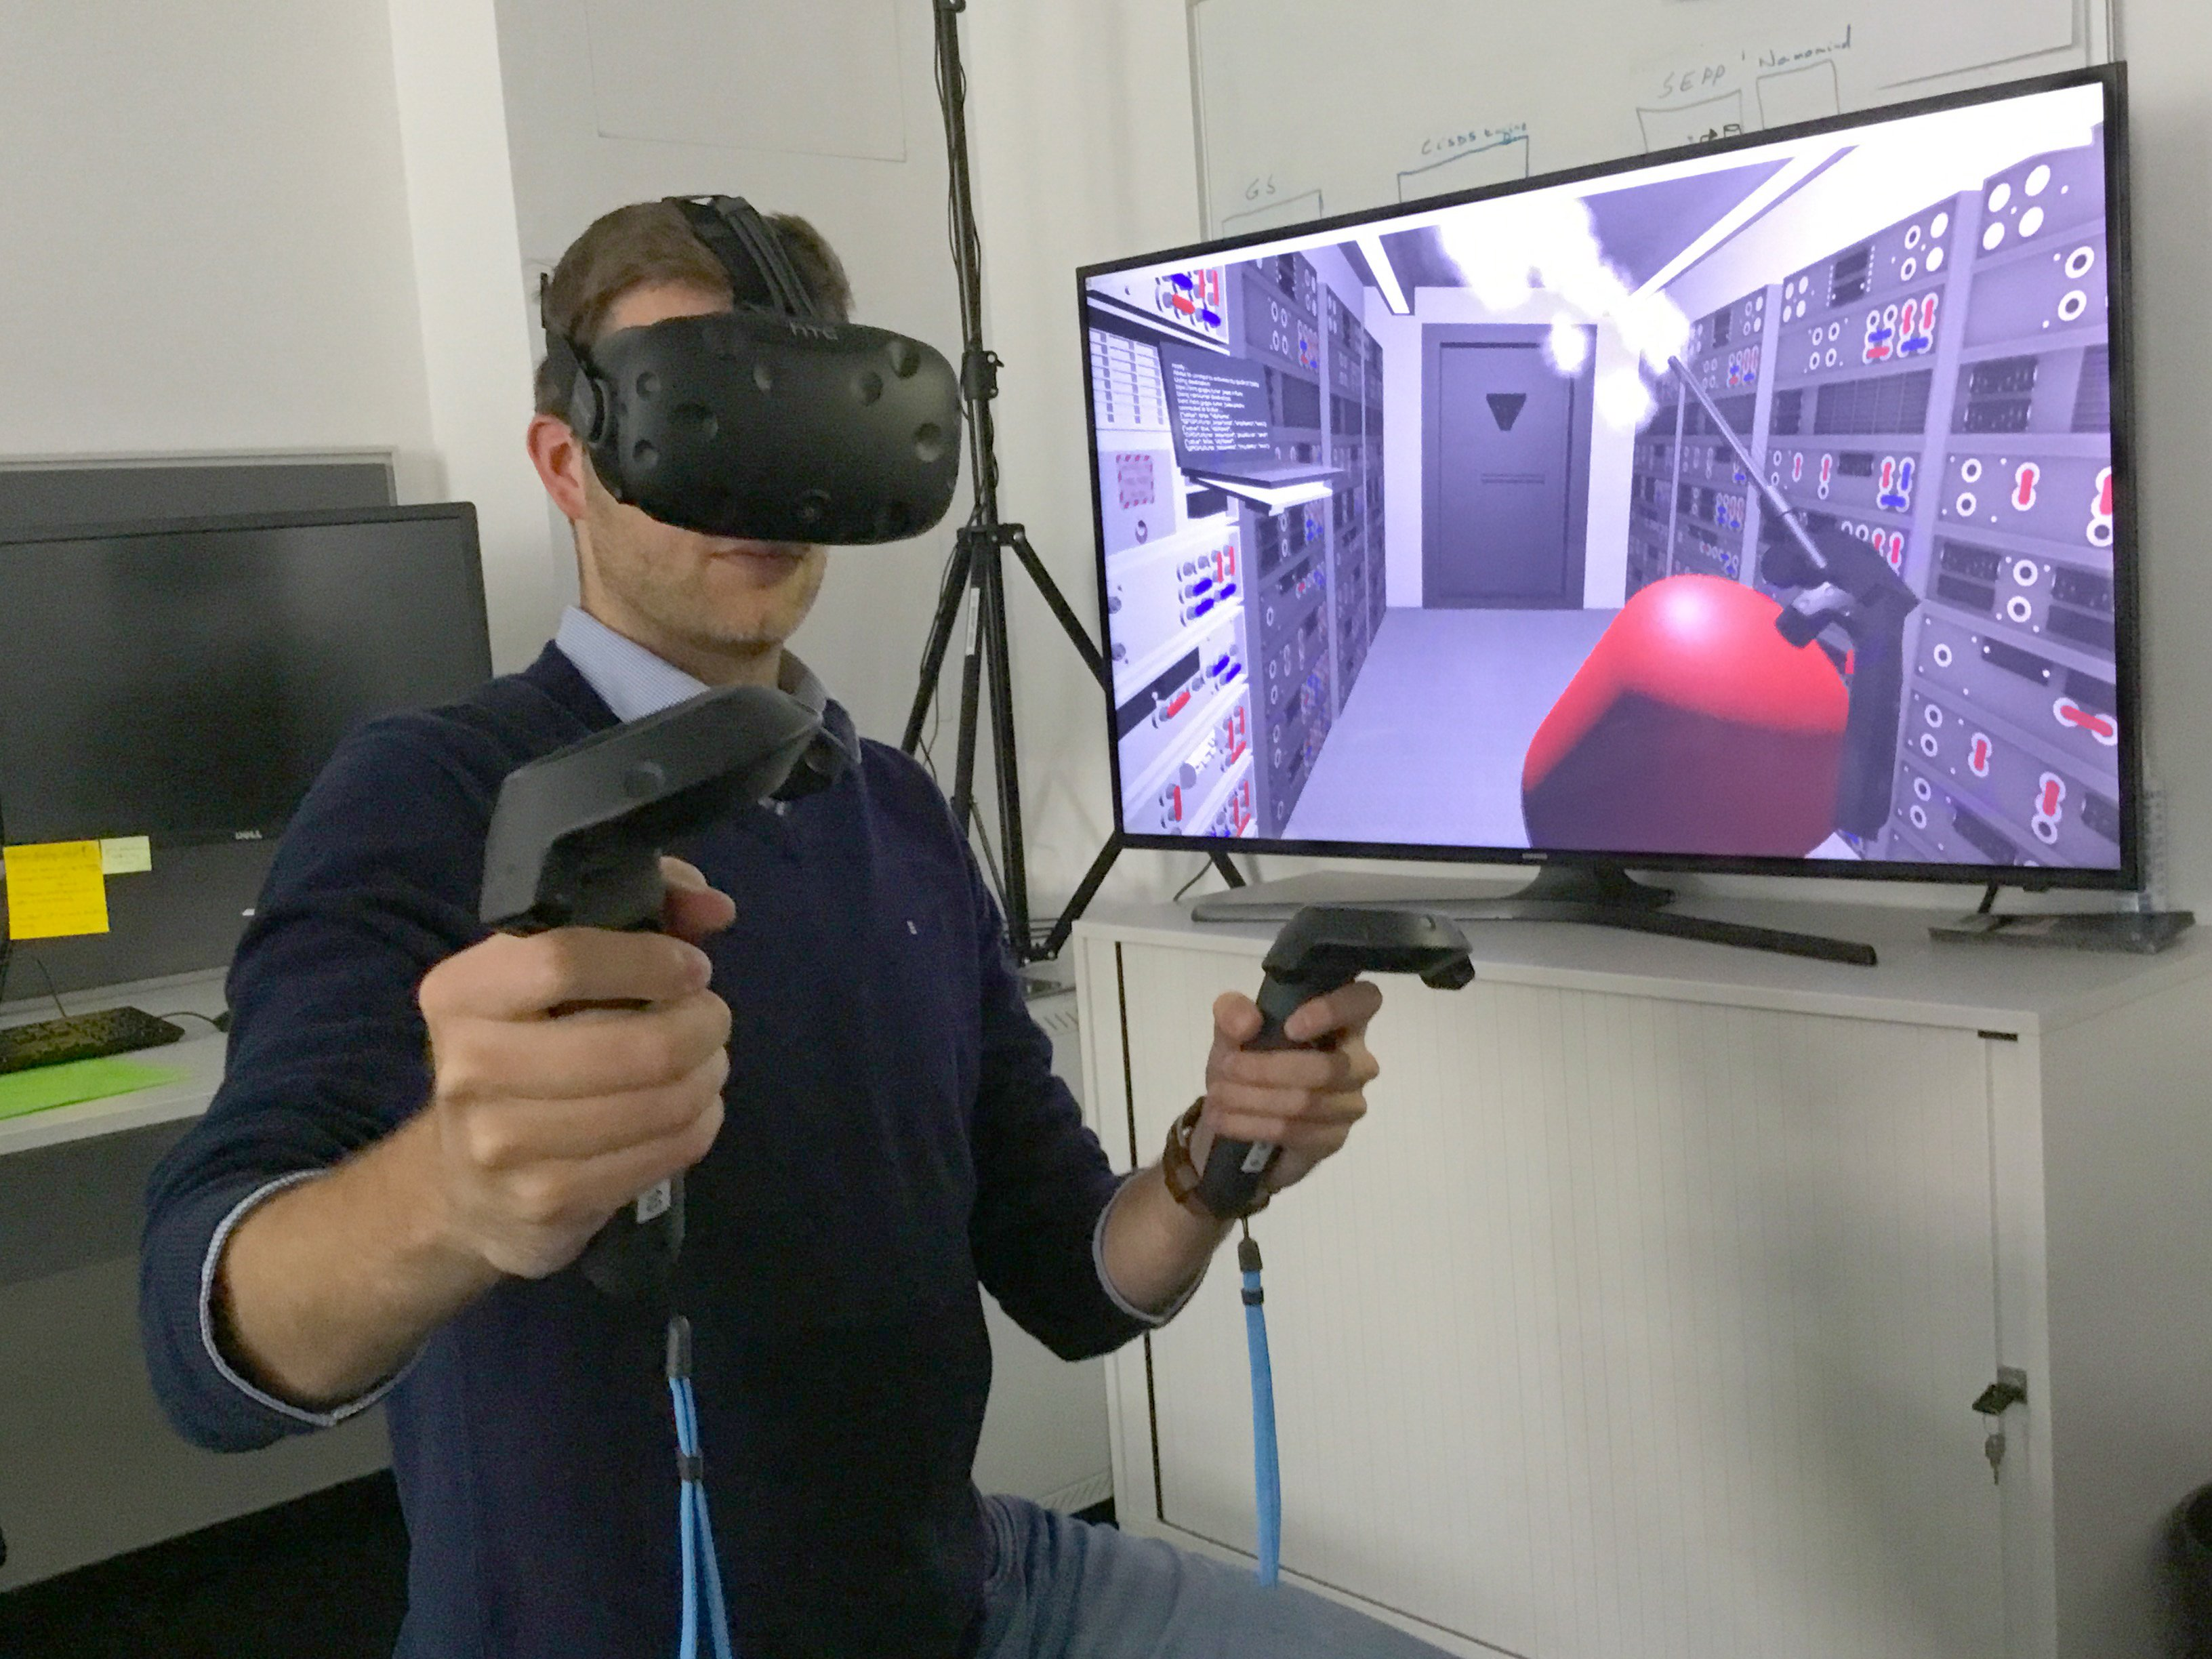 b04aa6df4e4b 5 Amazing Ways to Improve Your Business with Virtual Reality